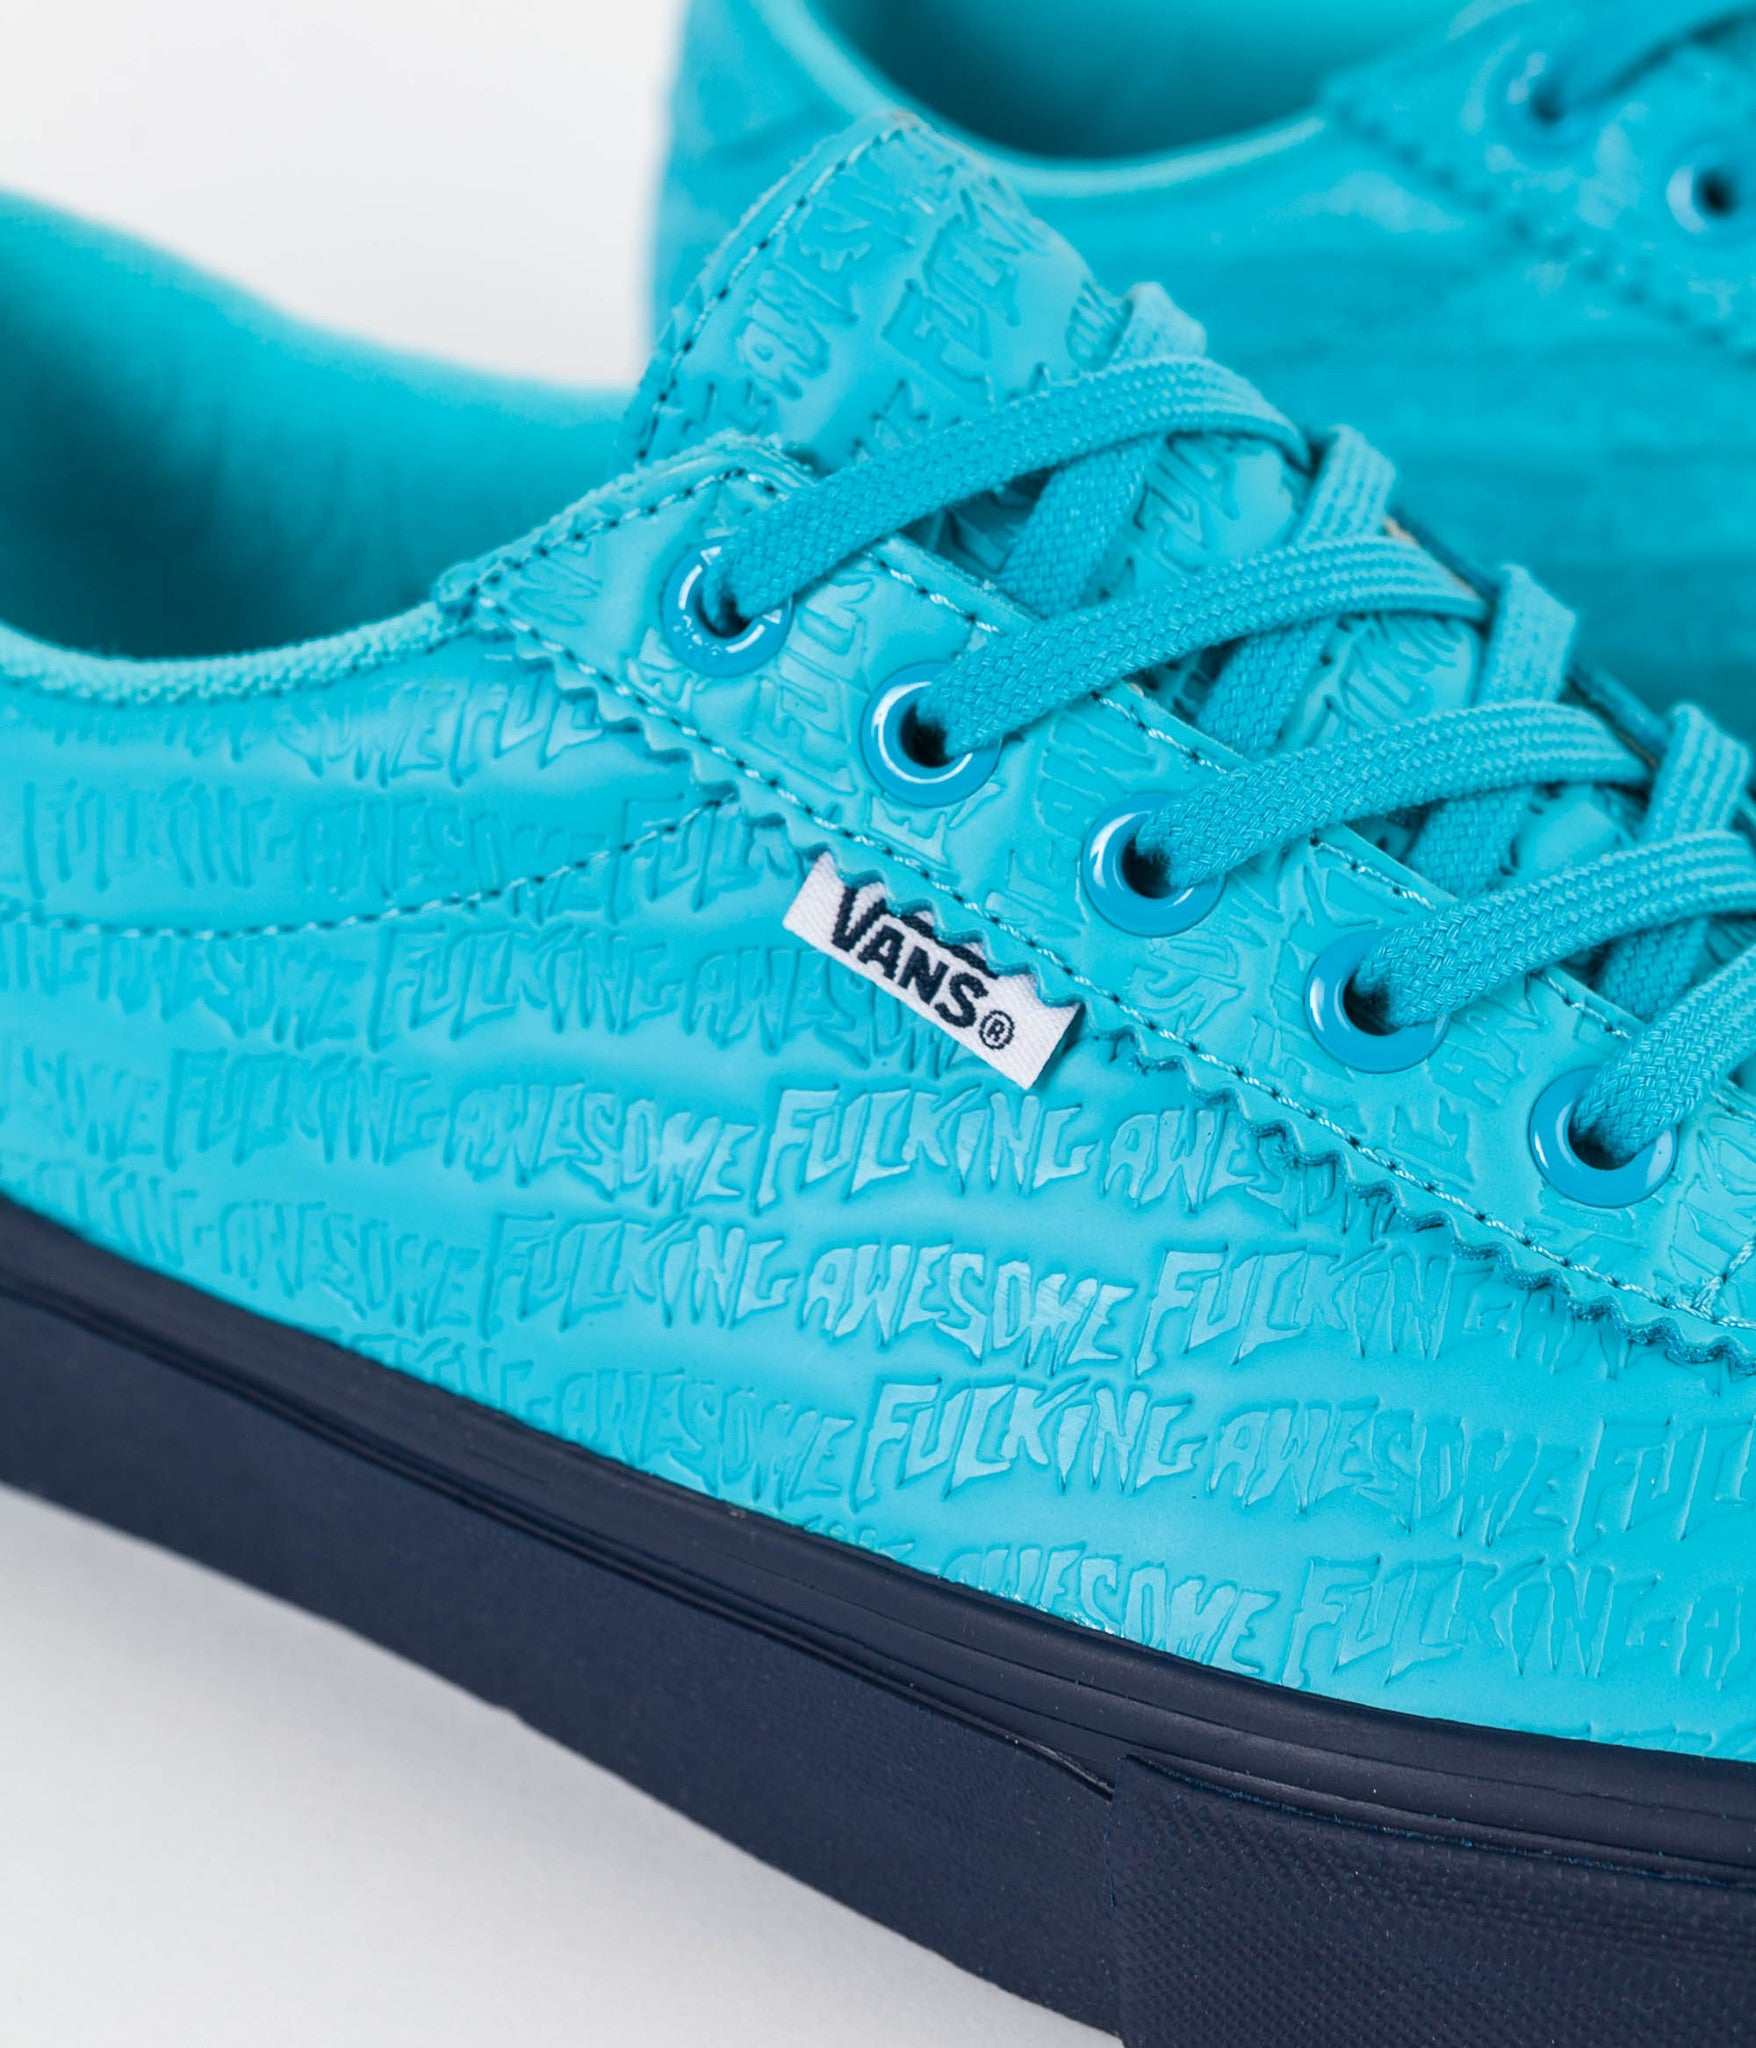 f22090f3ce4 ... Blue Vans x Fucking Awesome Epoch  94 Pro Shoes - Bright ...